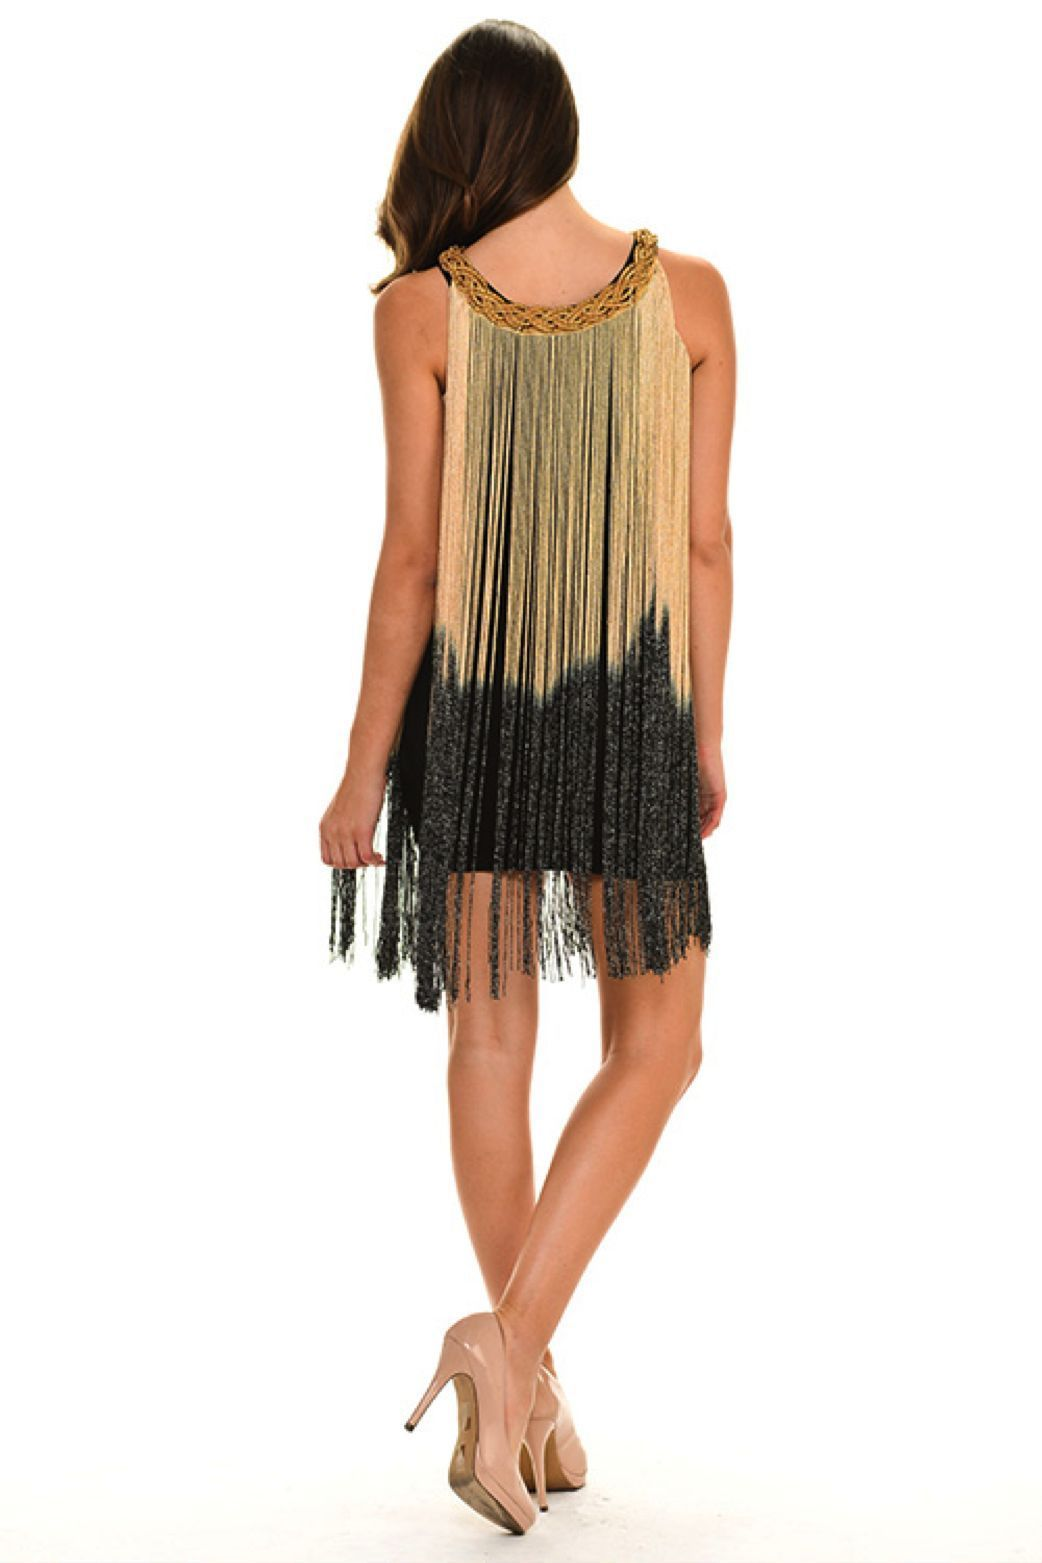 Image 2 of Sexy Jrs Fringe Black, Gold/Black, Red/Black Lined Party Mini Dress S, M, L - Bl